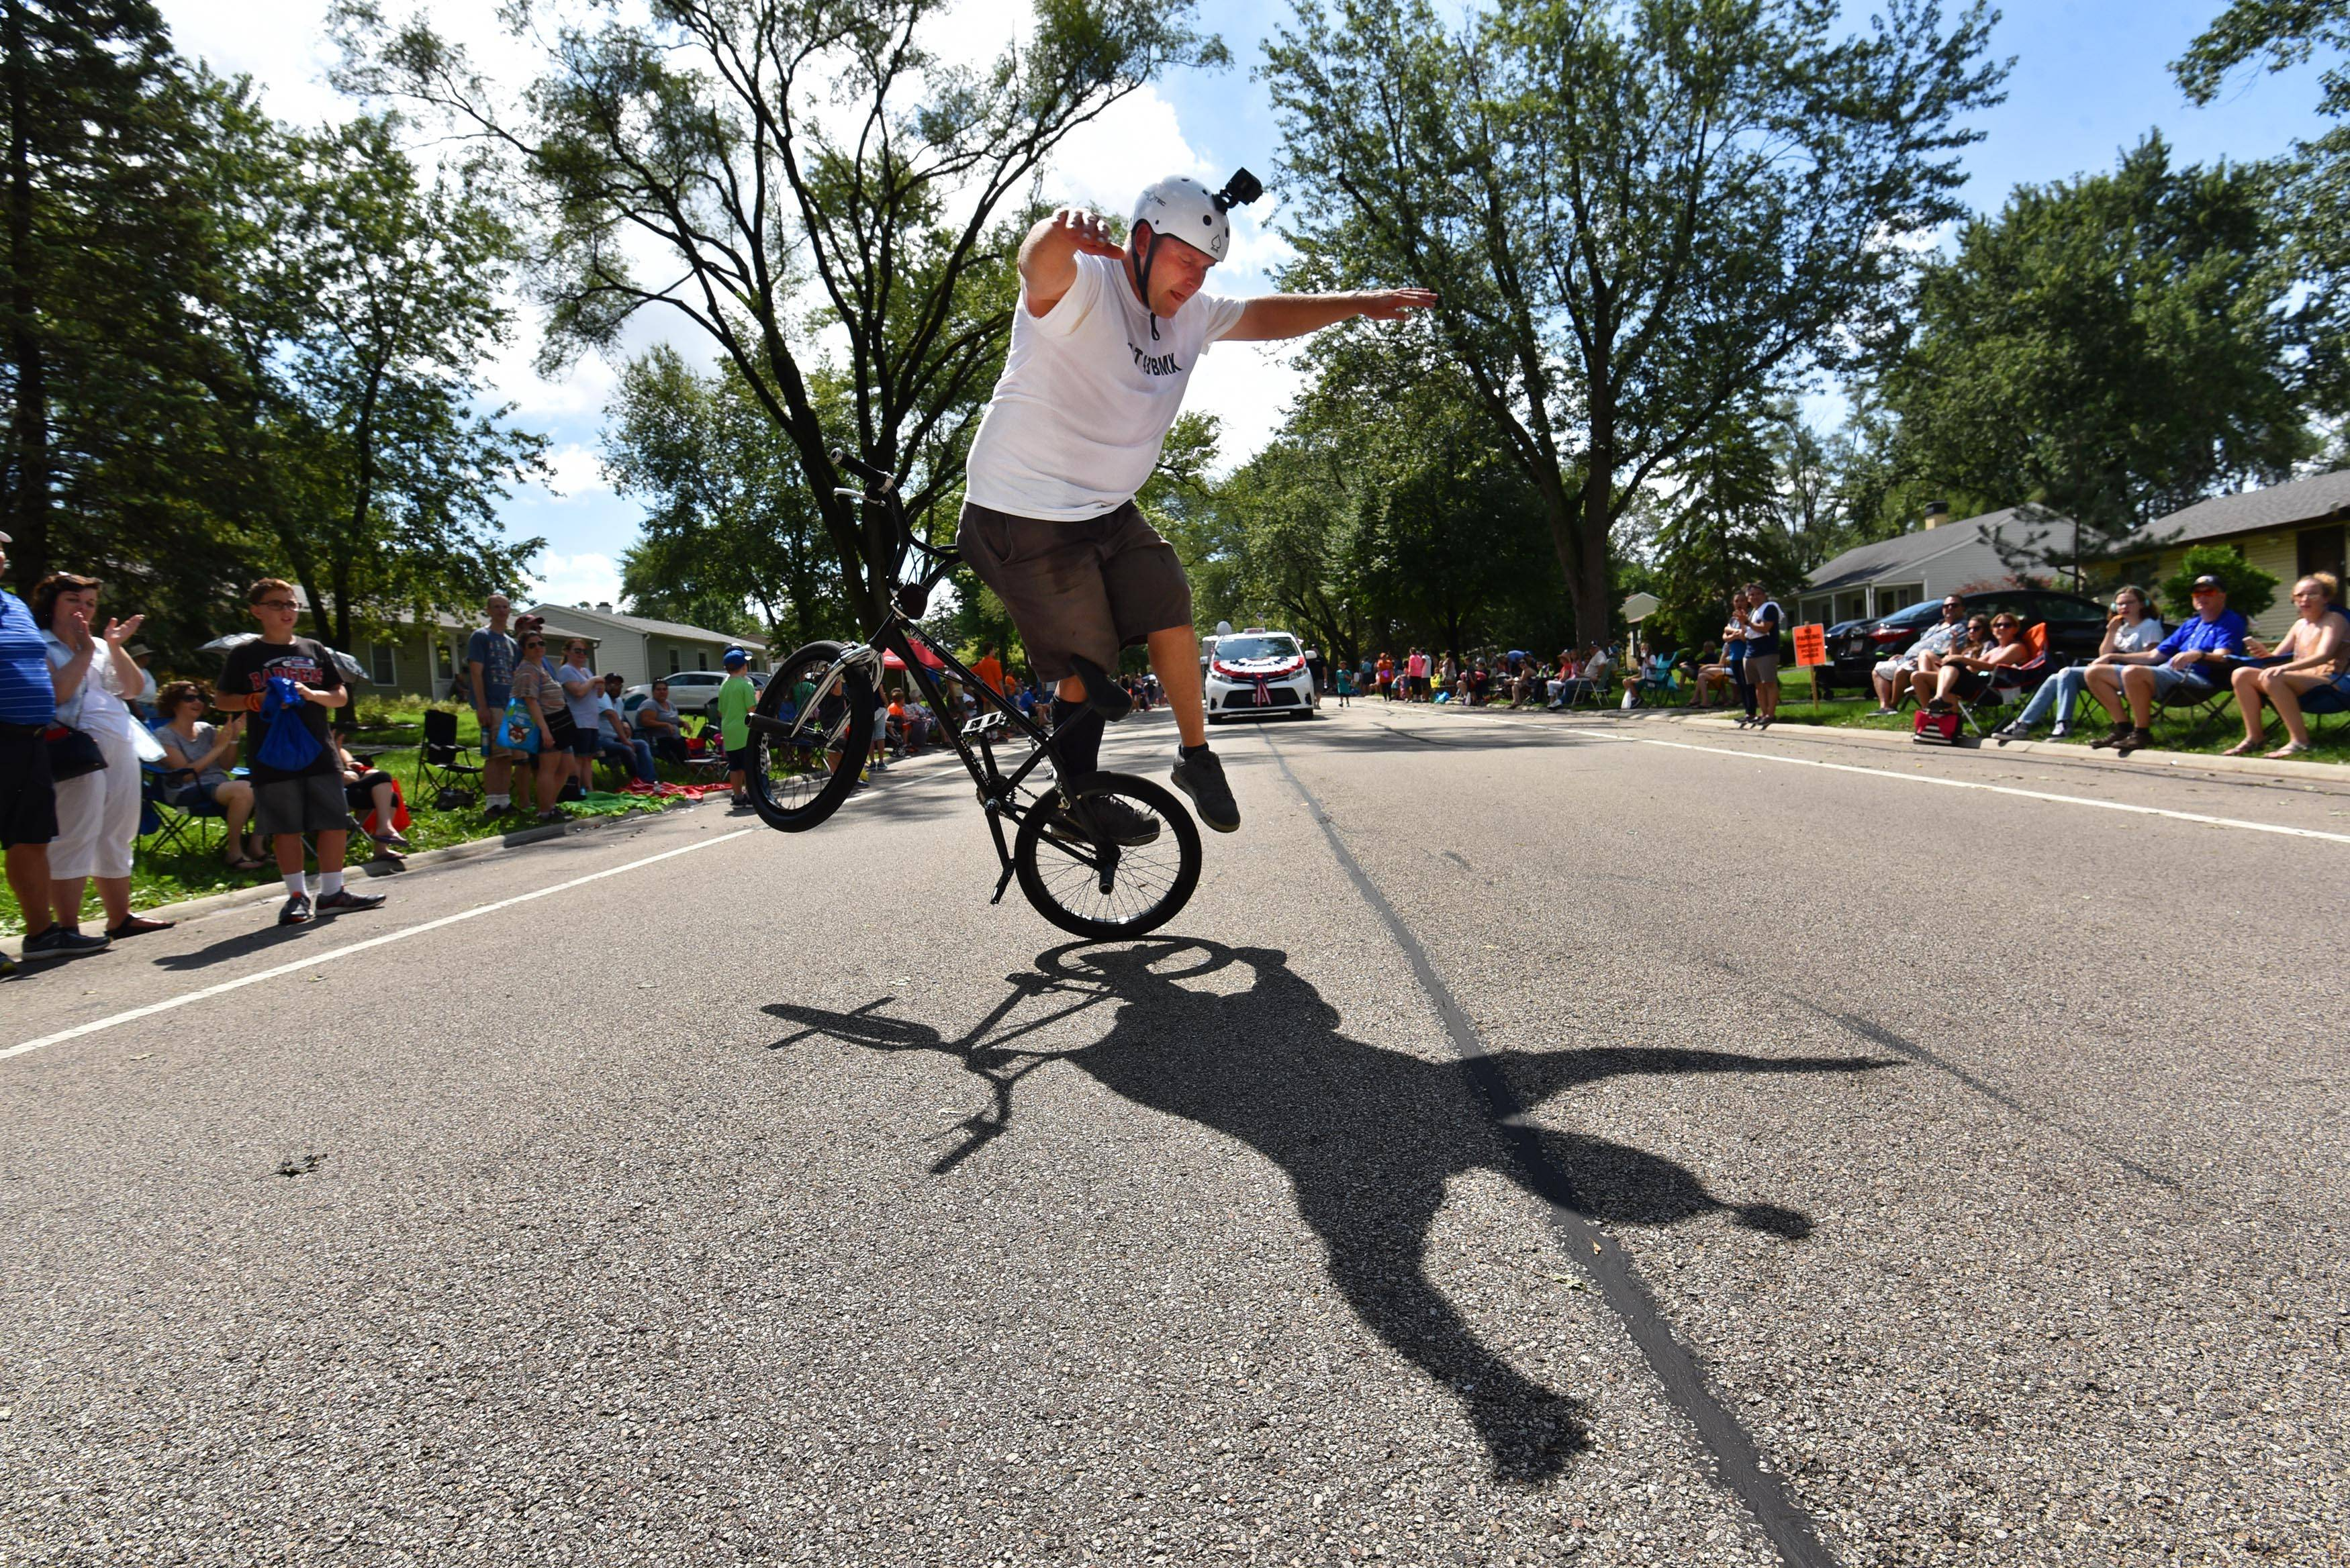 Todd Gully of Elk Grove Village performs on his bicycle in the middle of Raupp Boulevard at the Buffalo Grove Days parade Sunday morning. He rides with Flat 43 BMX in several parades annually.